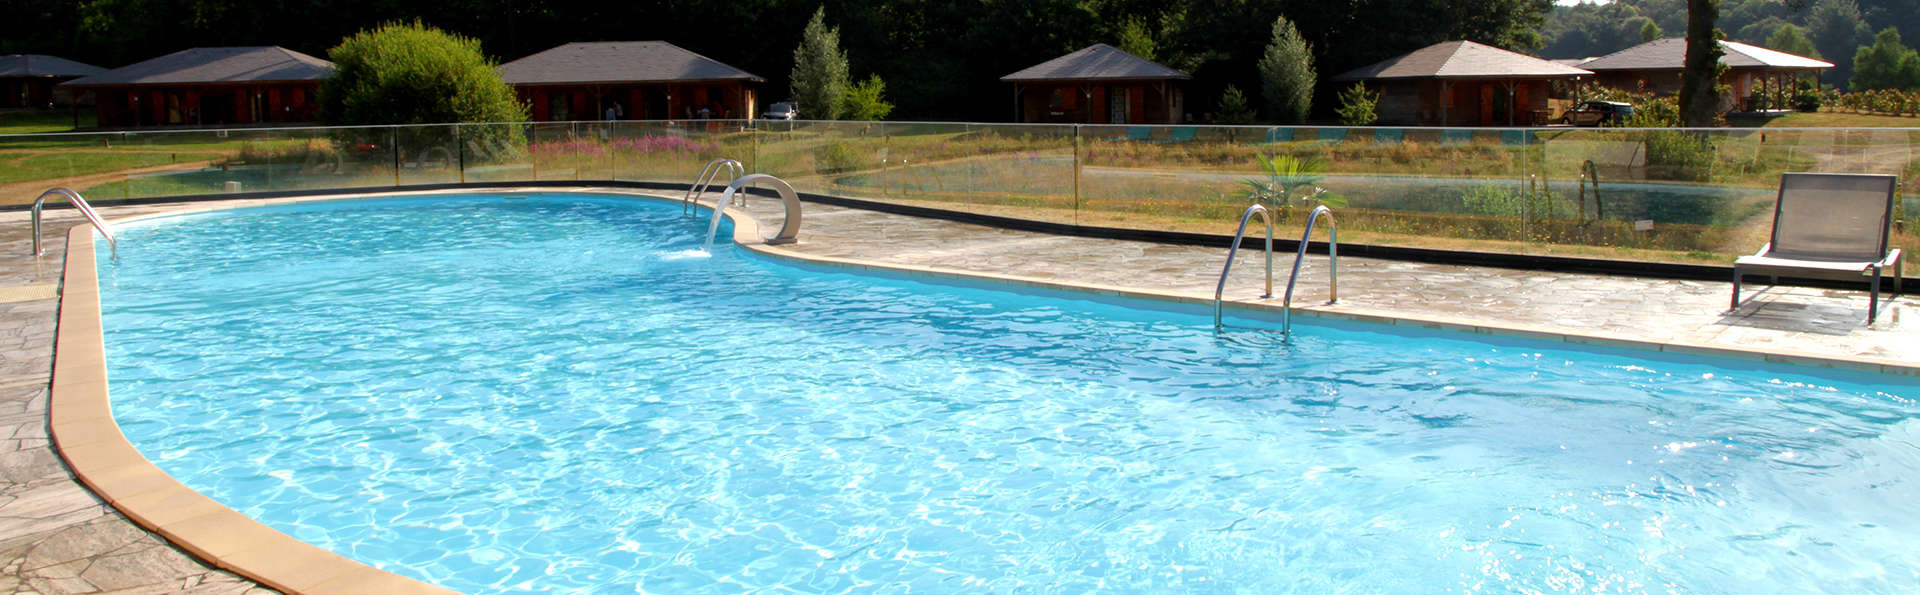 Domaine des Monedières - EDIT_NEW_POOL2.jpg